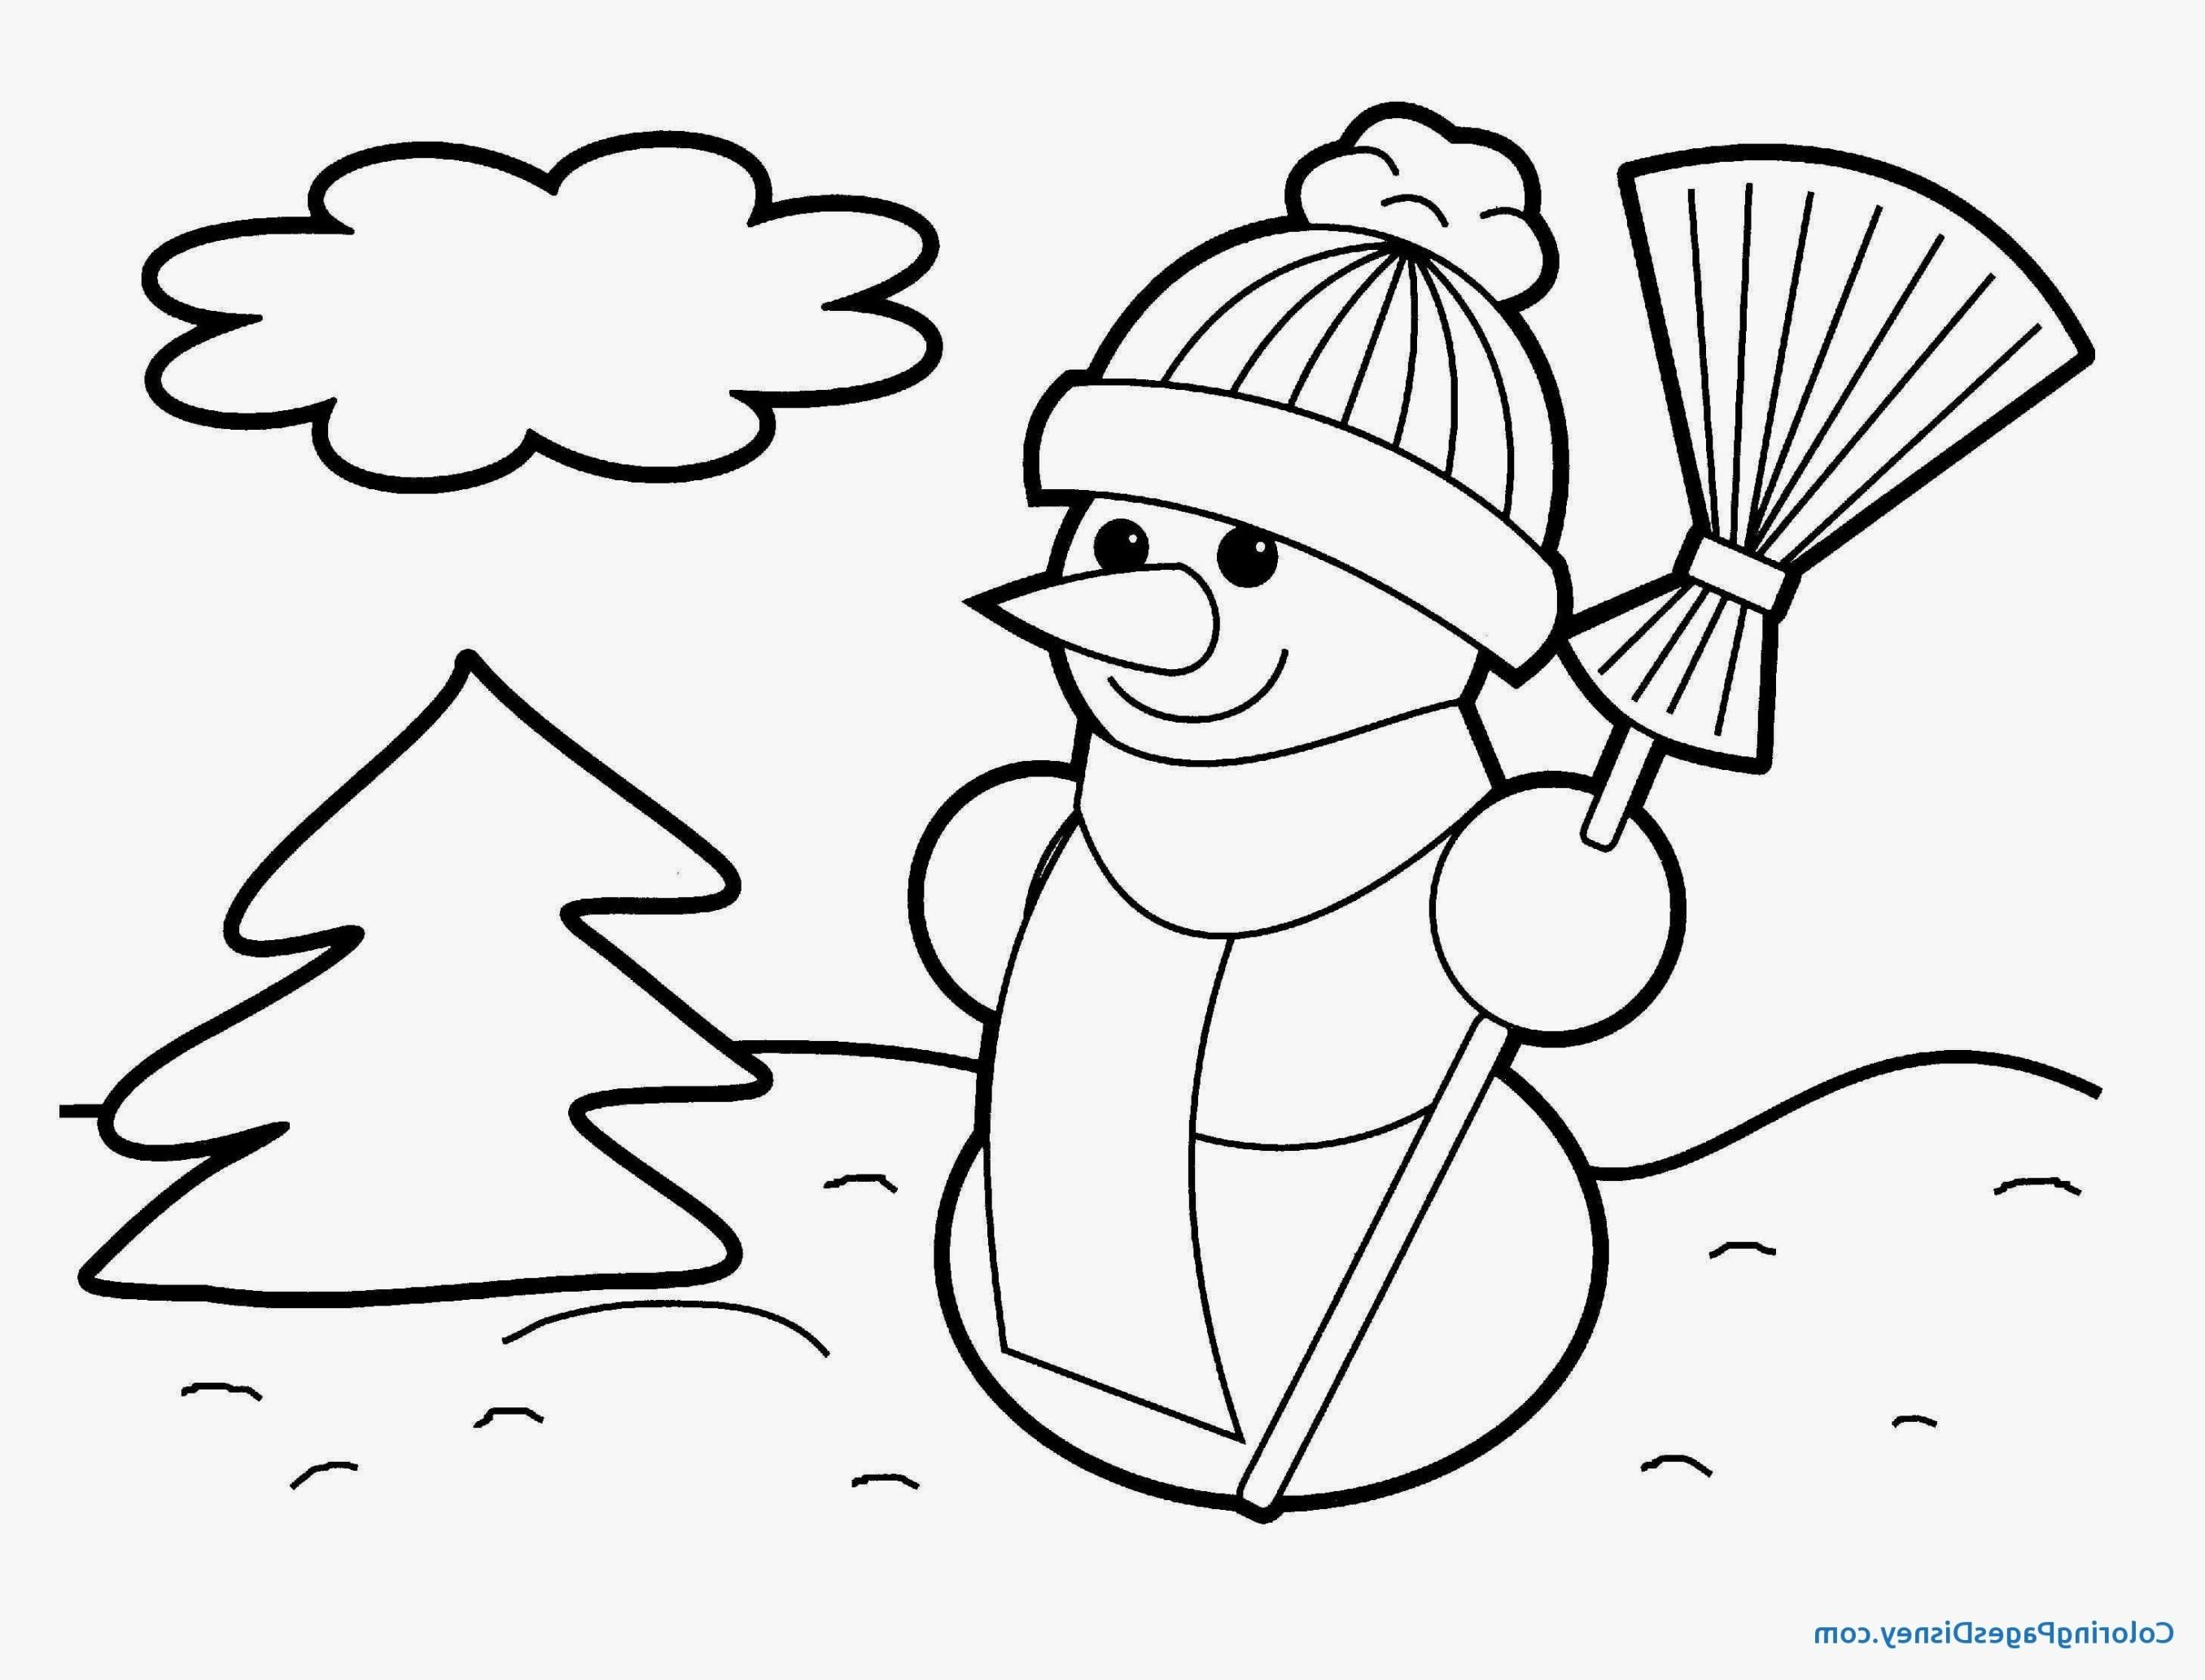 Childrens Christmas Tree Coloring Pages Refrence Alphabet